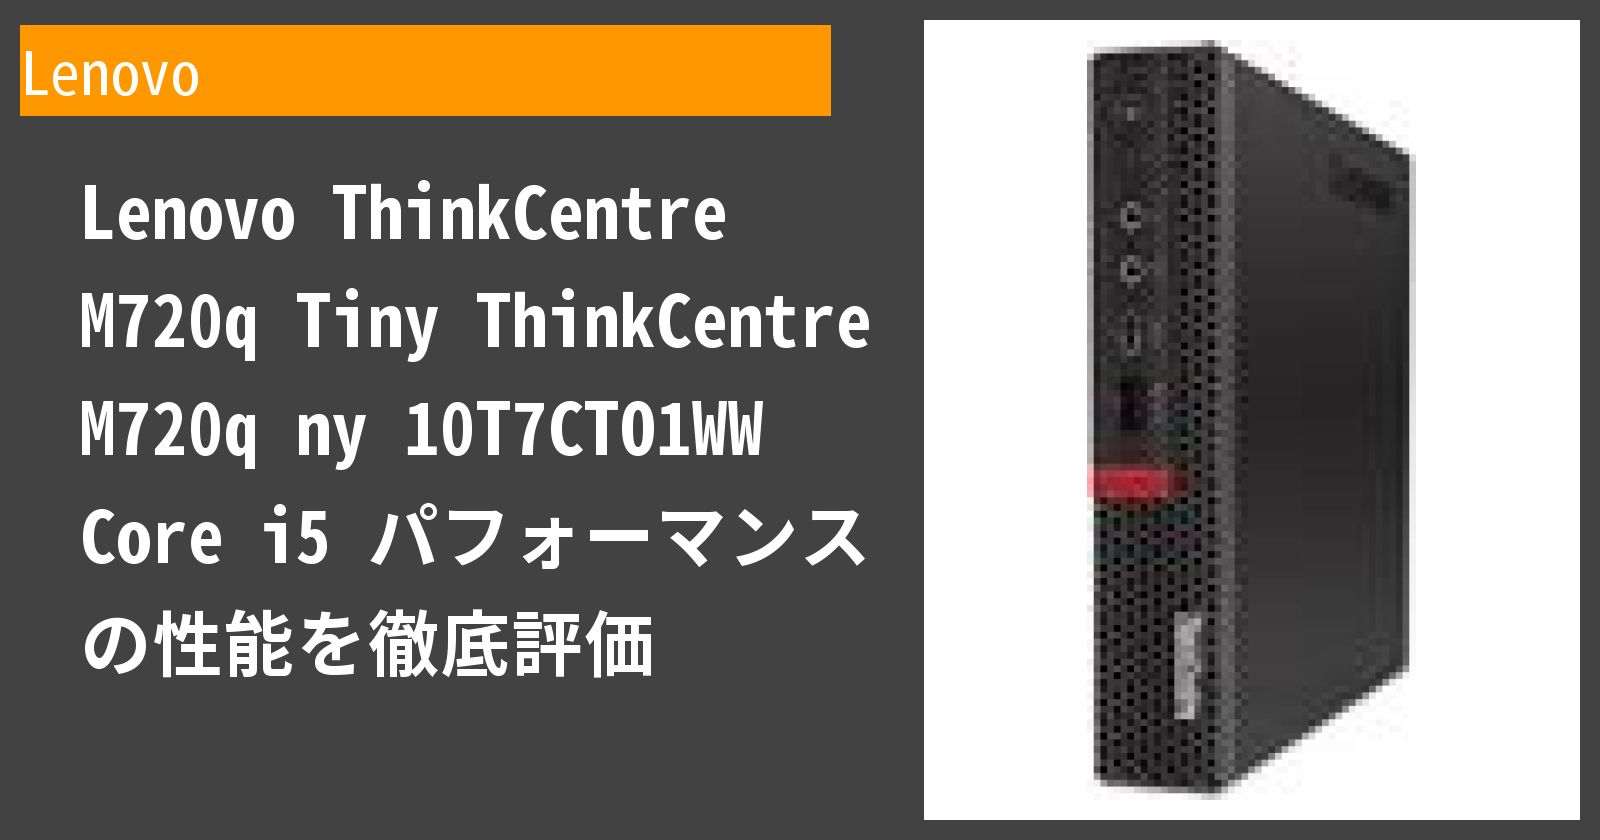 ThinkCentre M720q Tiny 10T7CTO1WW Core i5の性能を徹底評価